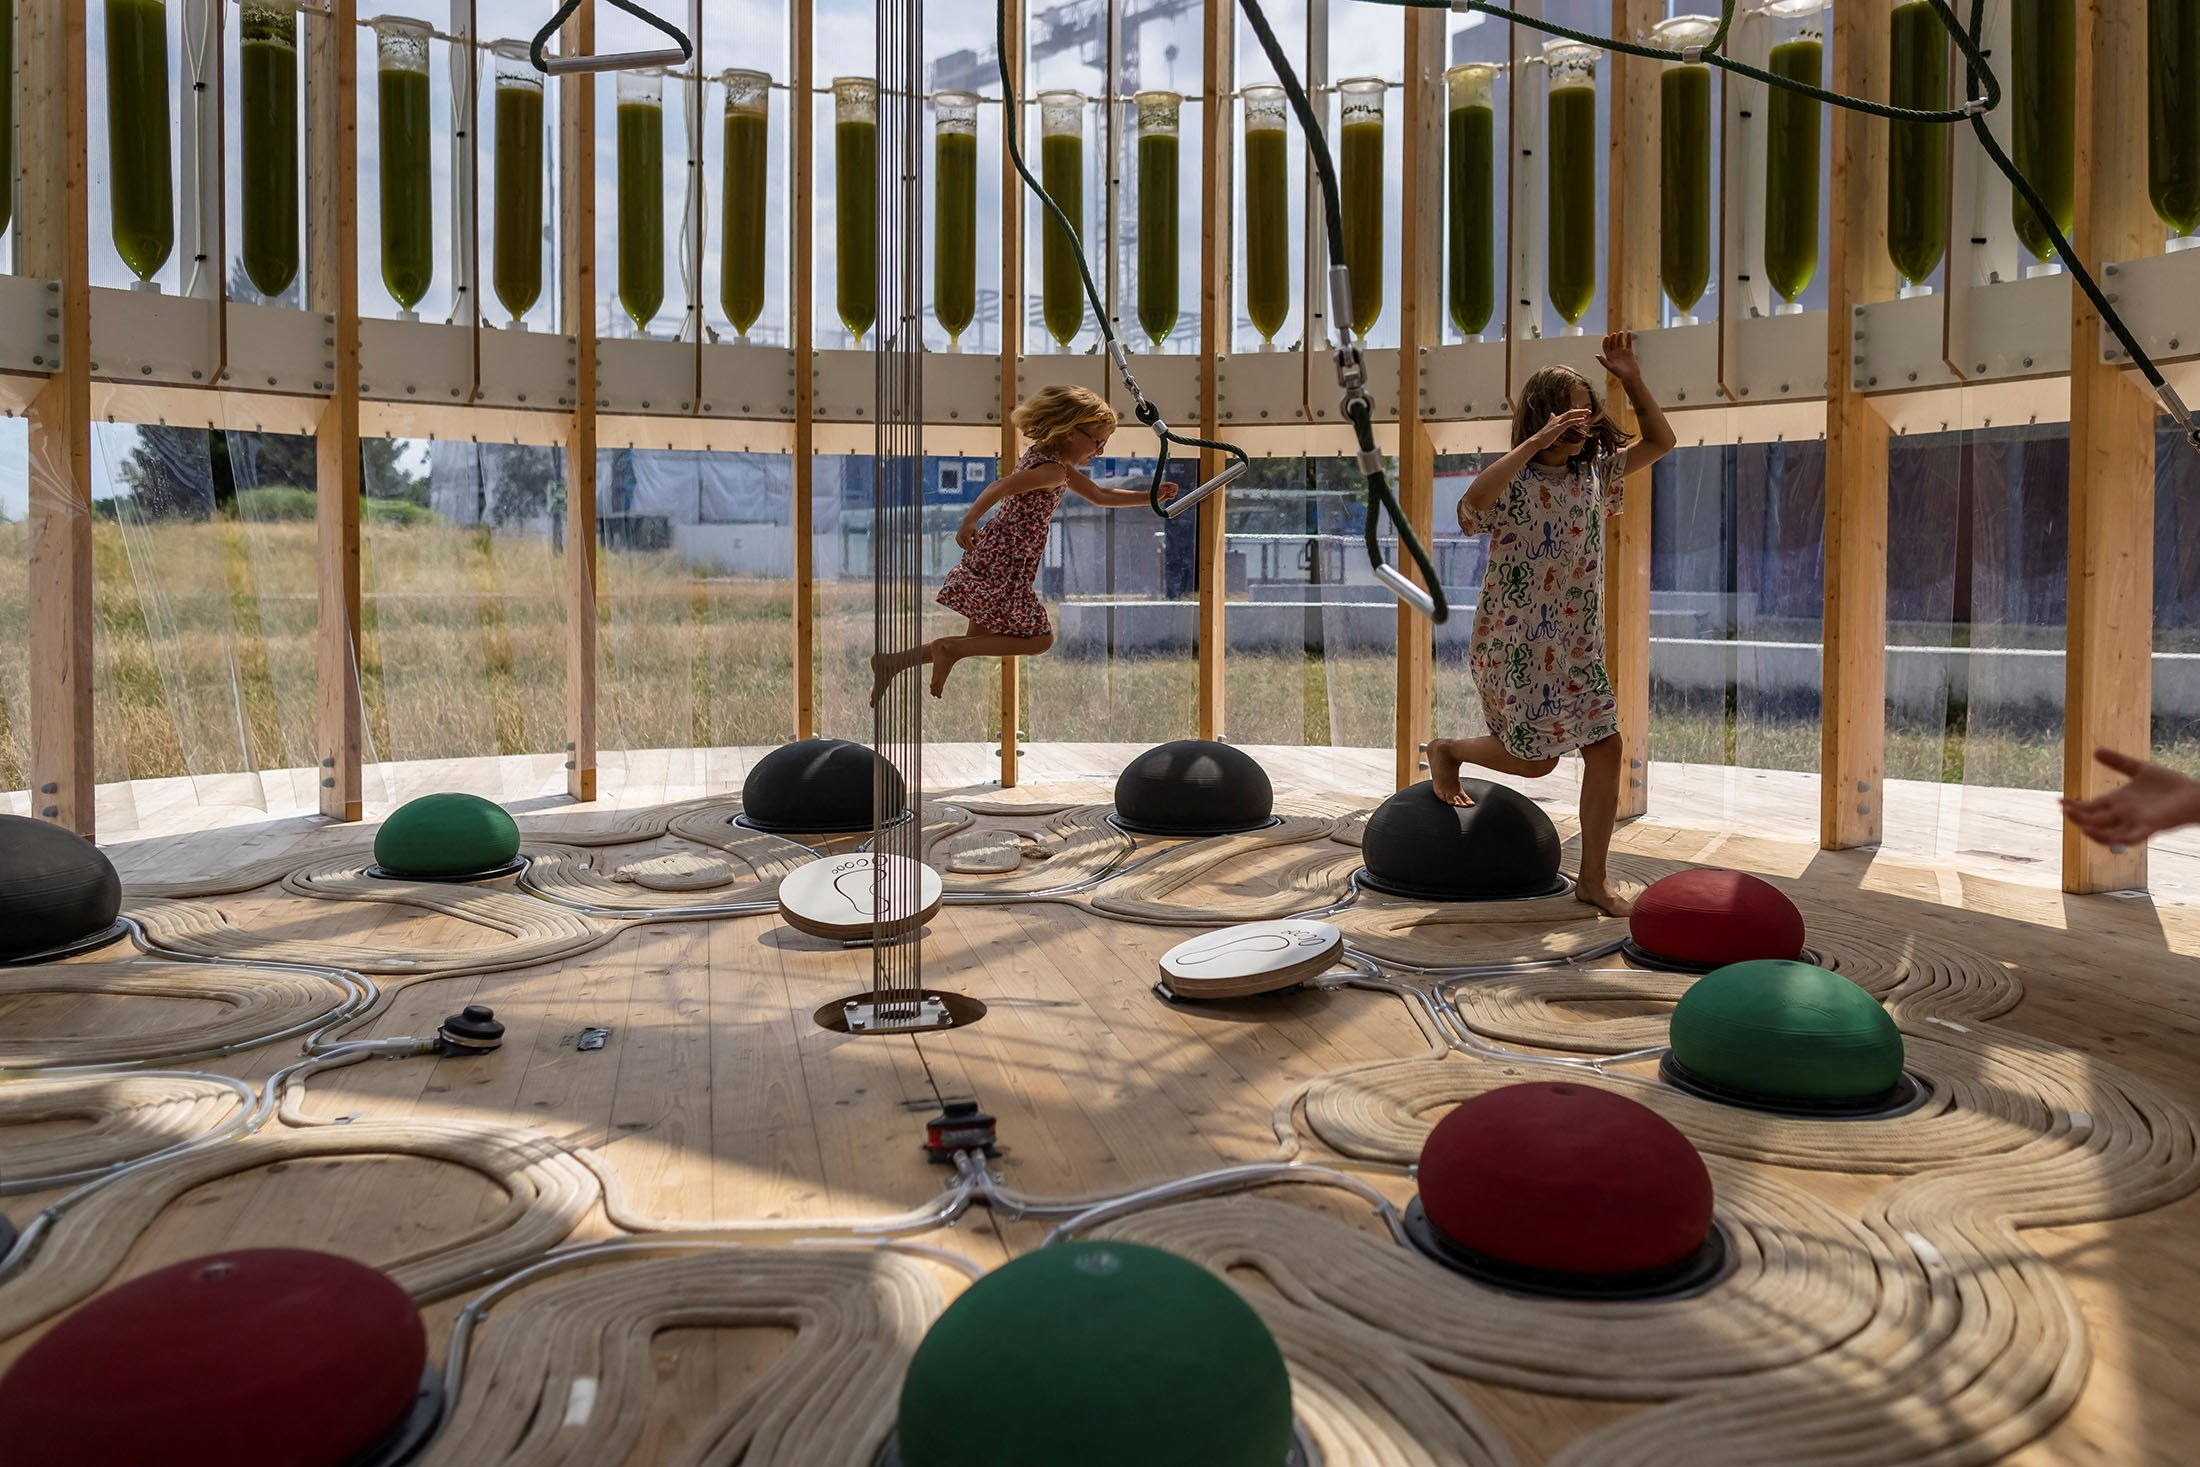 Six-year-old Janka and her friend nine-year-old Anielka play in an AirBubble, an innovative playground providing clean air thanks to algae that absorbs pollutants and CO2, in Warsaw, Poland, July 26, 2021. (AFP Photo)